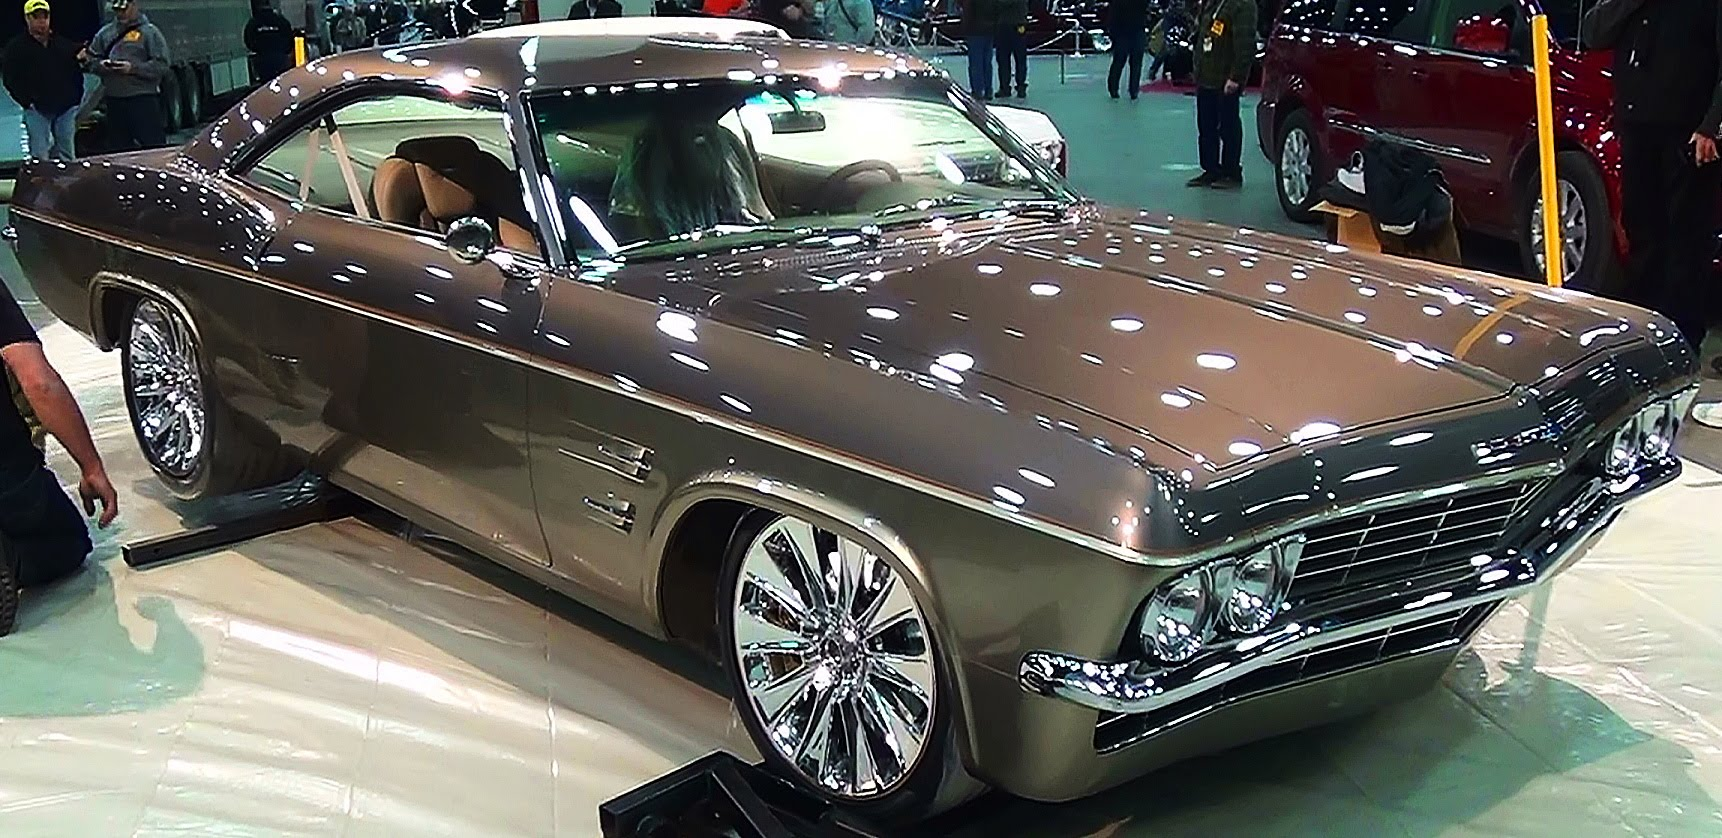 65 Impala The Imposter Foose Design 2015 Ridler Winner together with 2801 Tuning Volkswagen Jetta in addition Photo 05 in addition Preview Liberty Walk Audi R8 furthermore Adv1 chevrolet corvette c7 z06 Wallpapers. on 2015 chevrolet camaro car